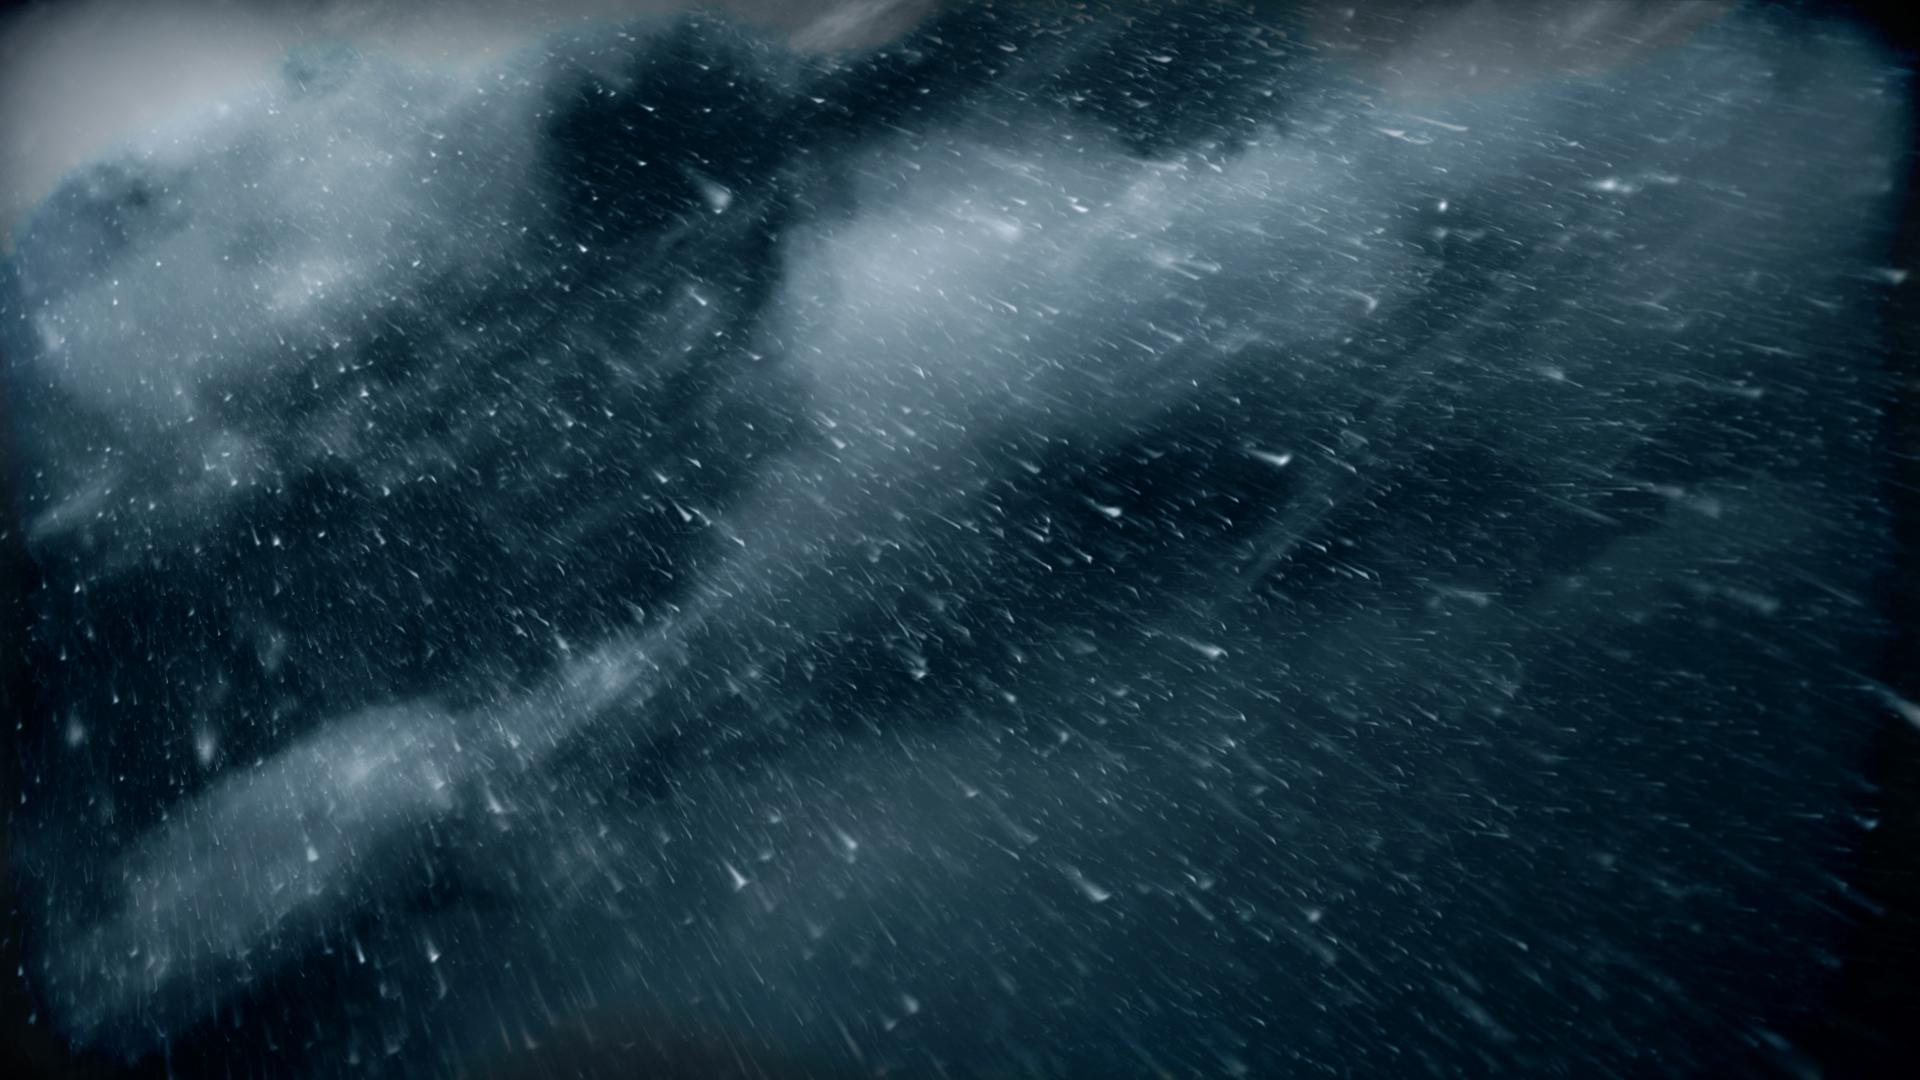 Rain Background Wallpapers WIN10 THEMES 1920x1080